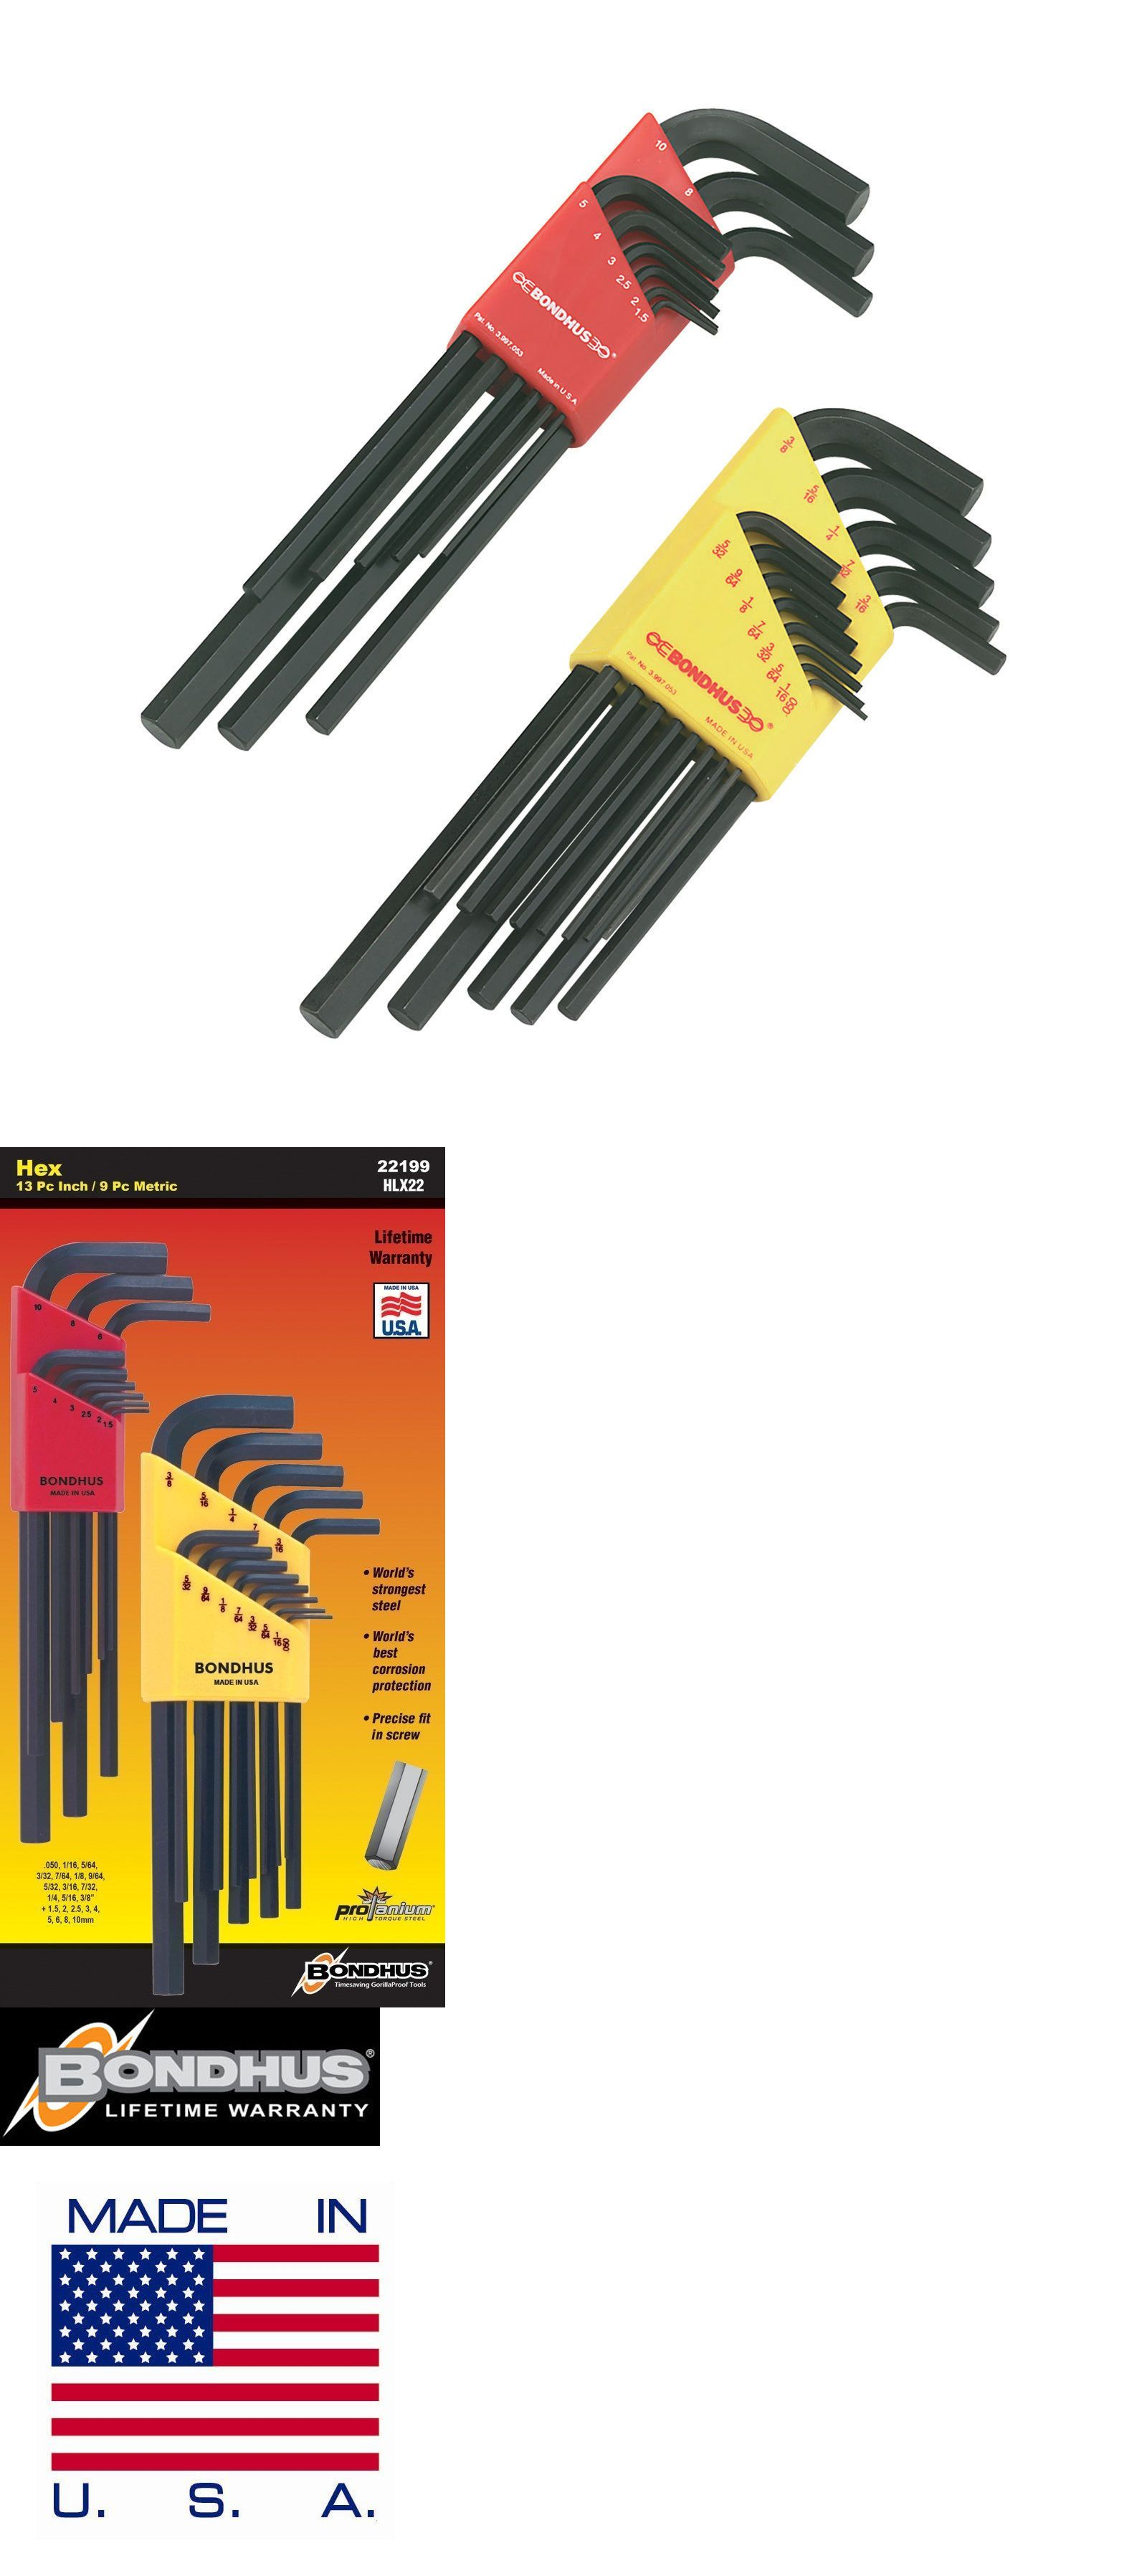 Hex Keys And Wrenches 42258 Bondhus 22199 Hex L Wrench Double Pack Long Length 12137 050 3 8 Inch And 12 Buy It Now Only 14 Hex Hex Key Wrench Set